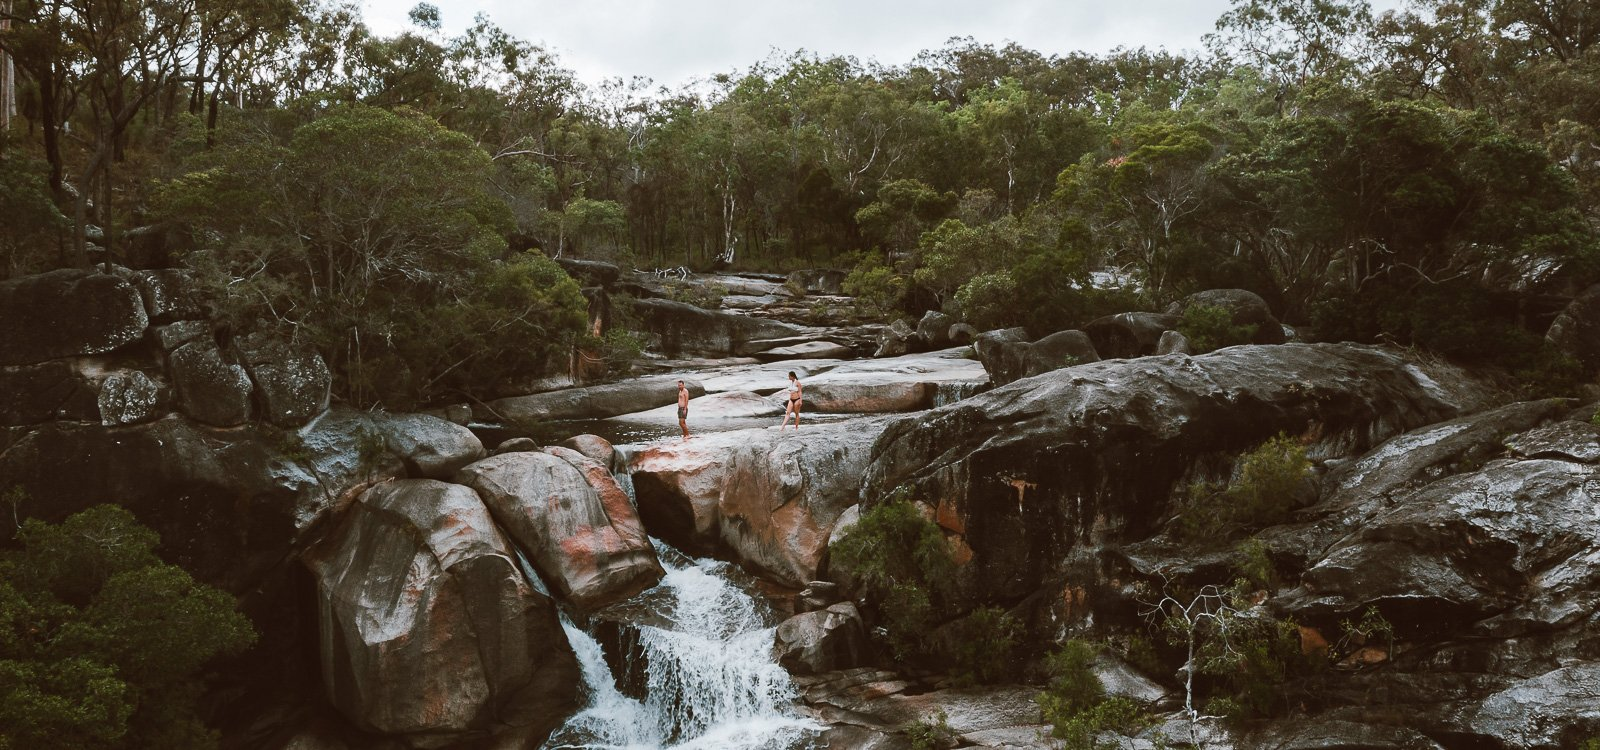 How To Get To Davies Creek Falls from Cairns